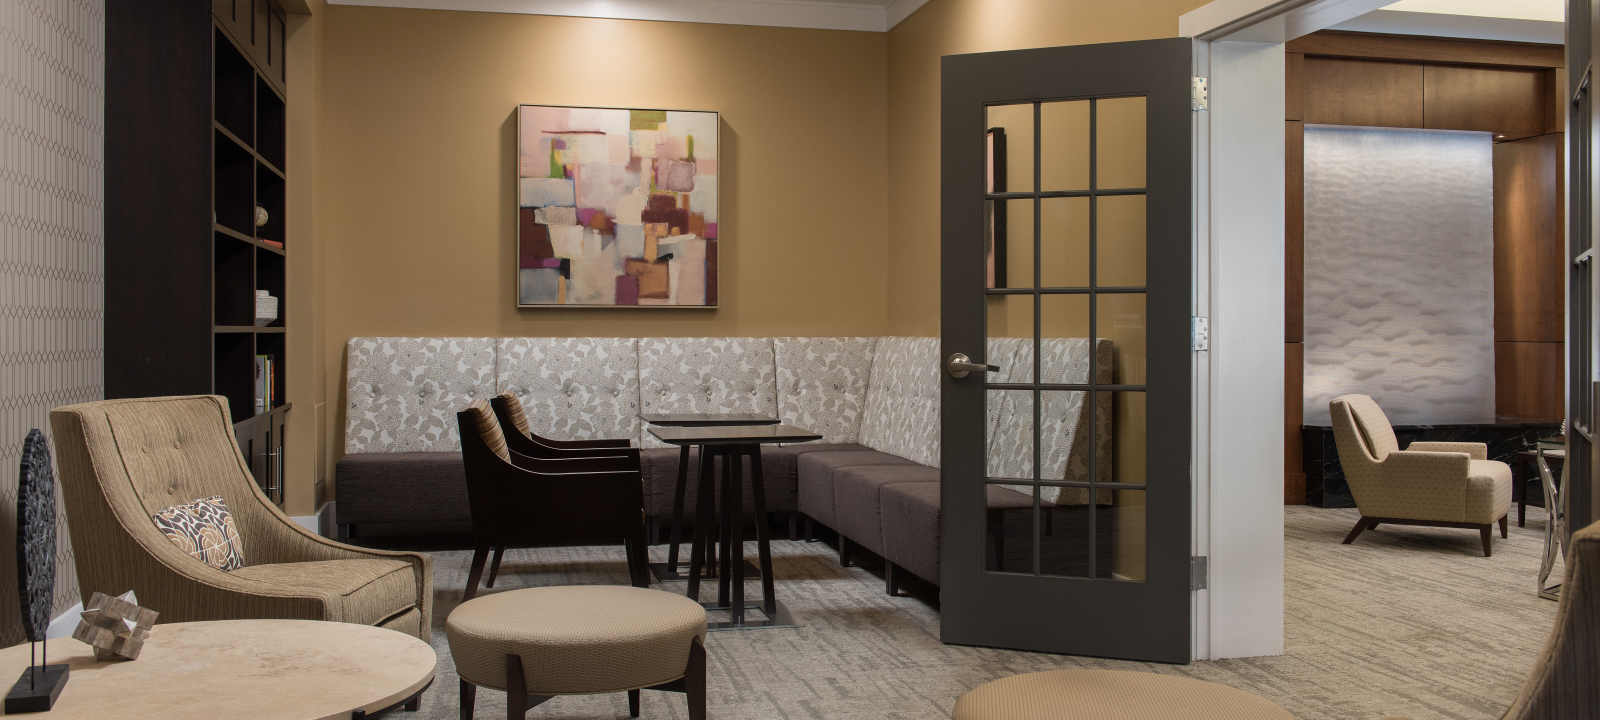 lounge at Meridian at Eagleview apartments in Exton PA